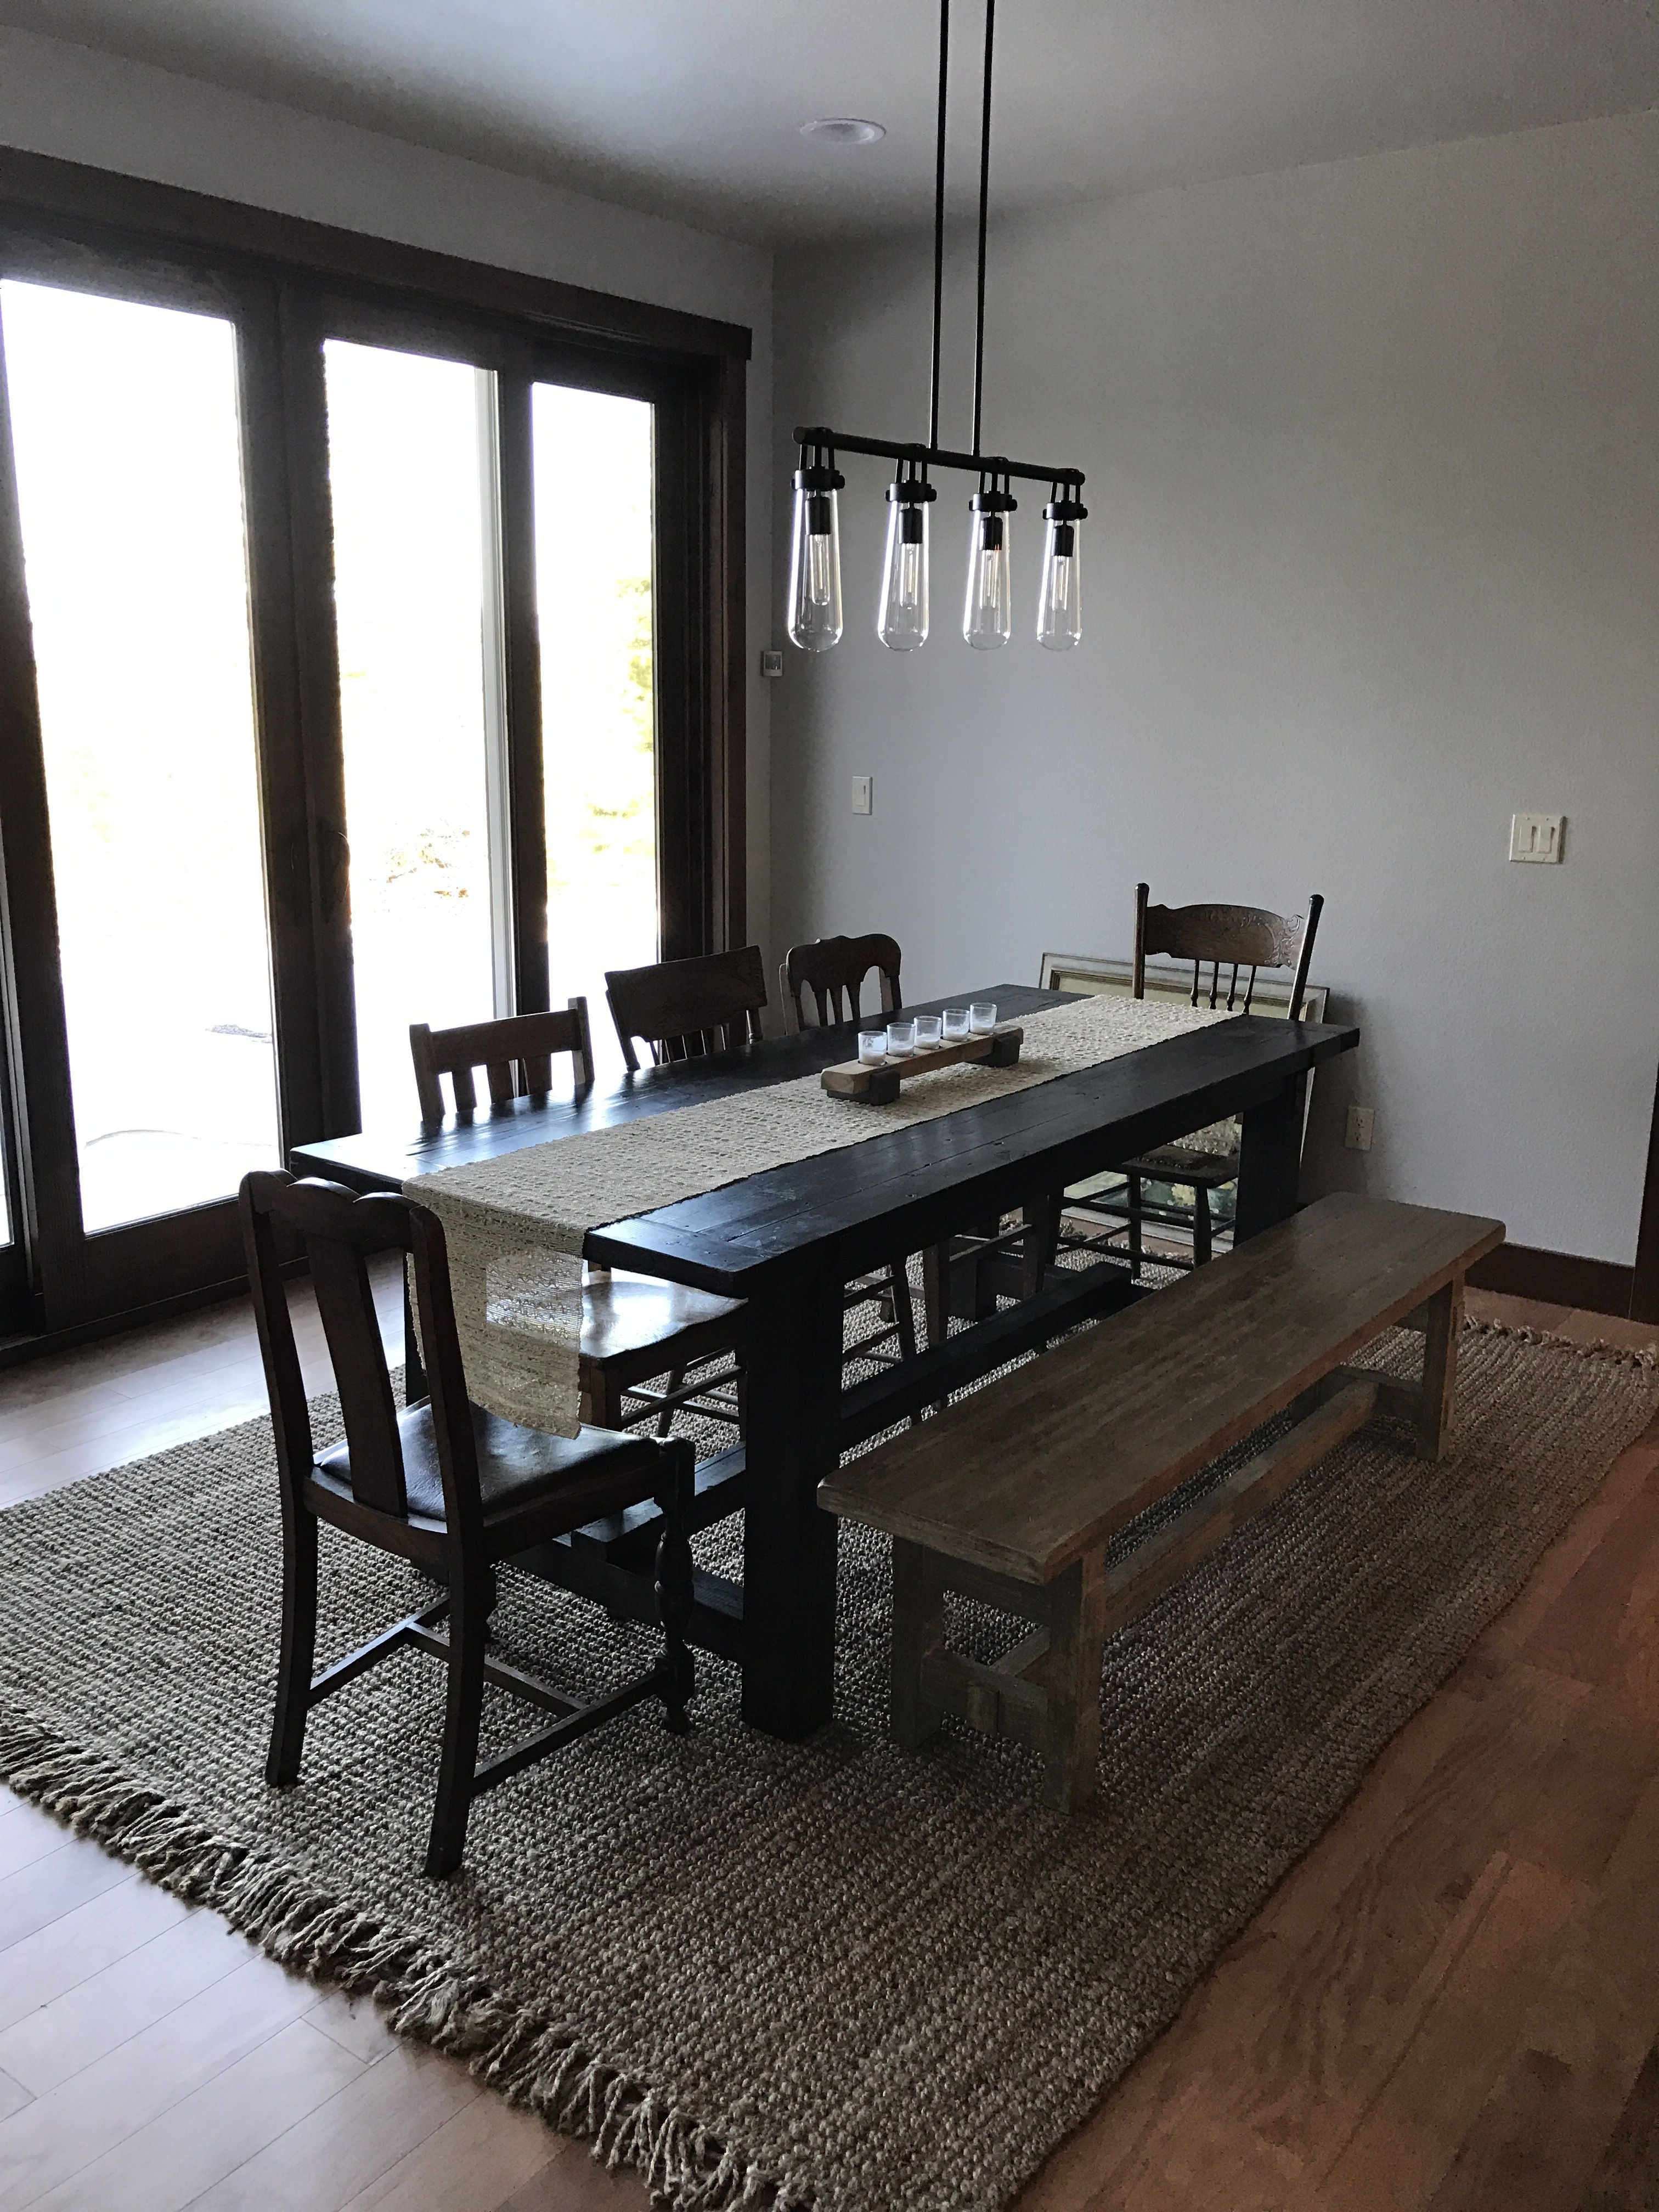 Dining Room Craigslist Table Offer Up Bench And My Old